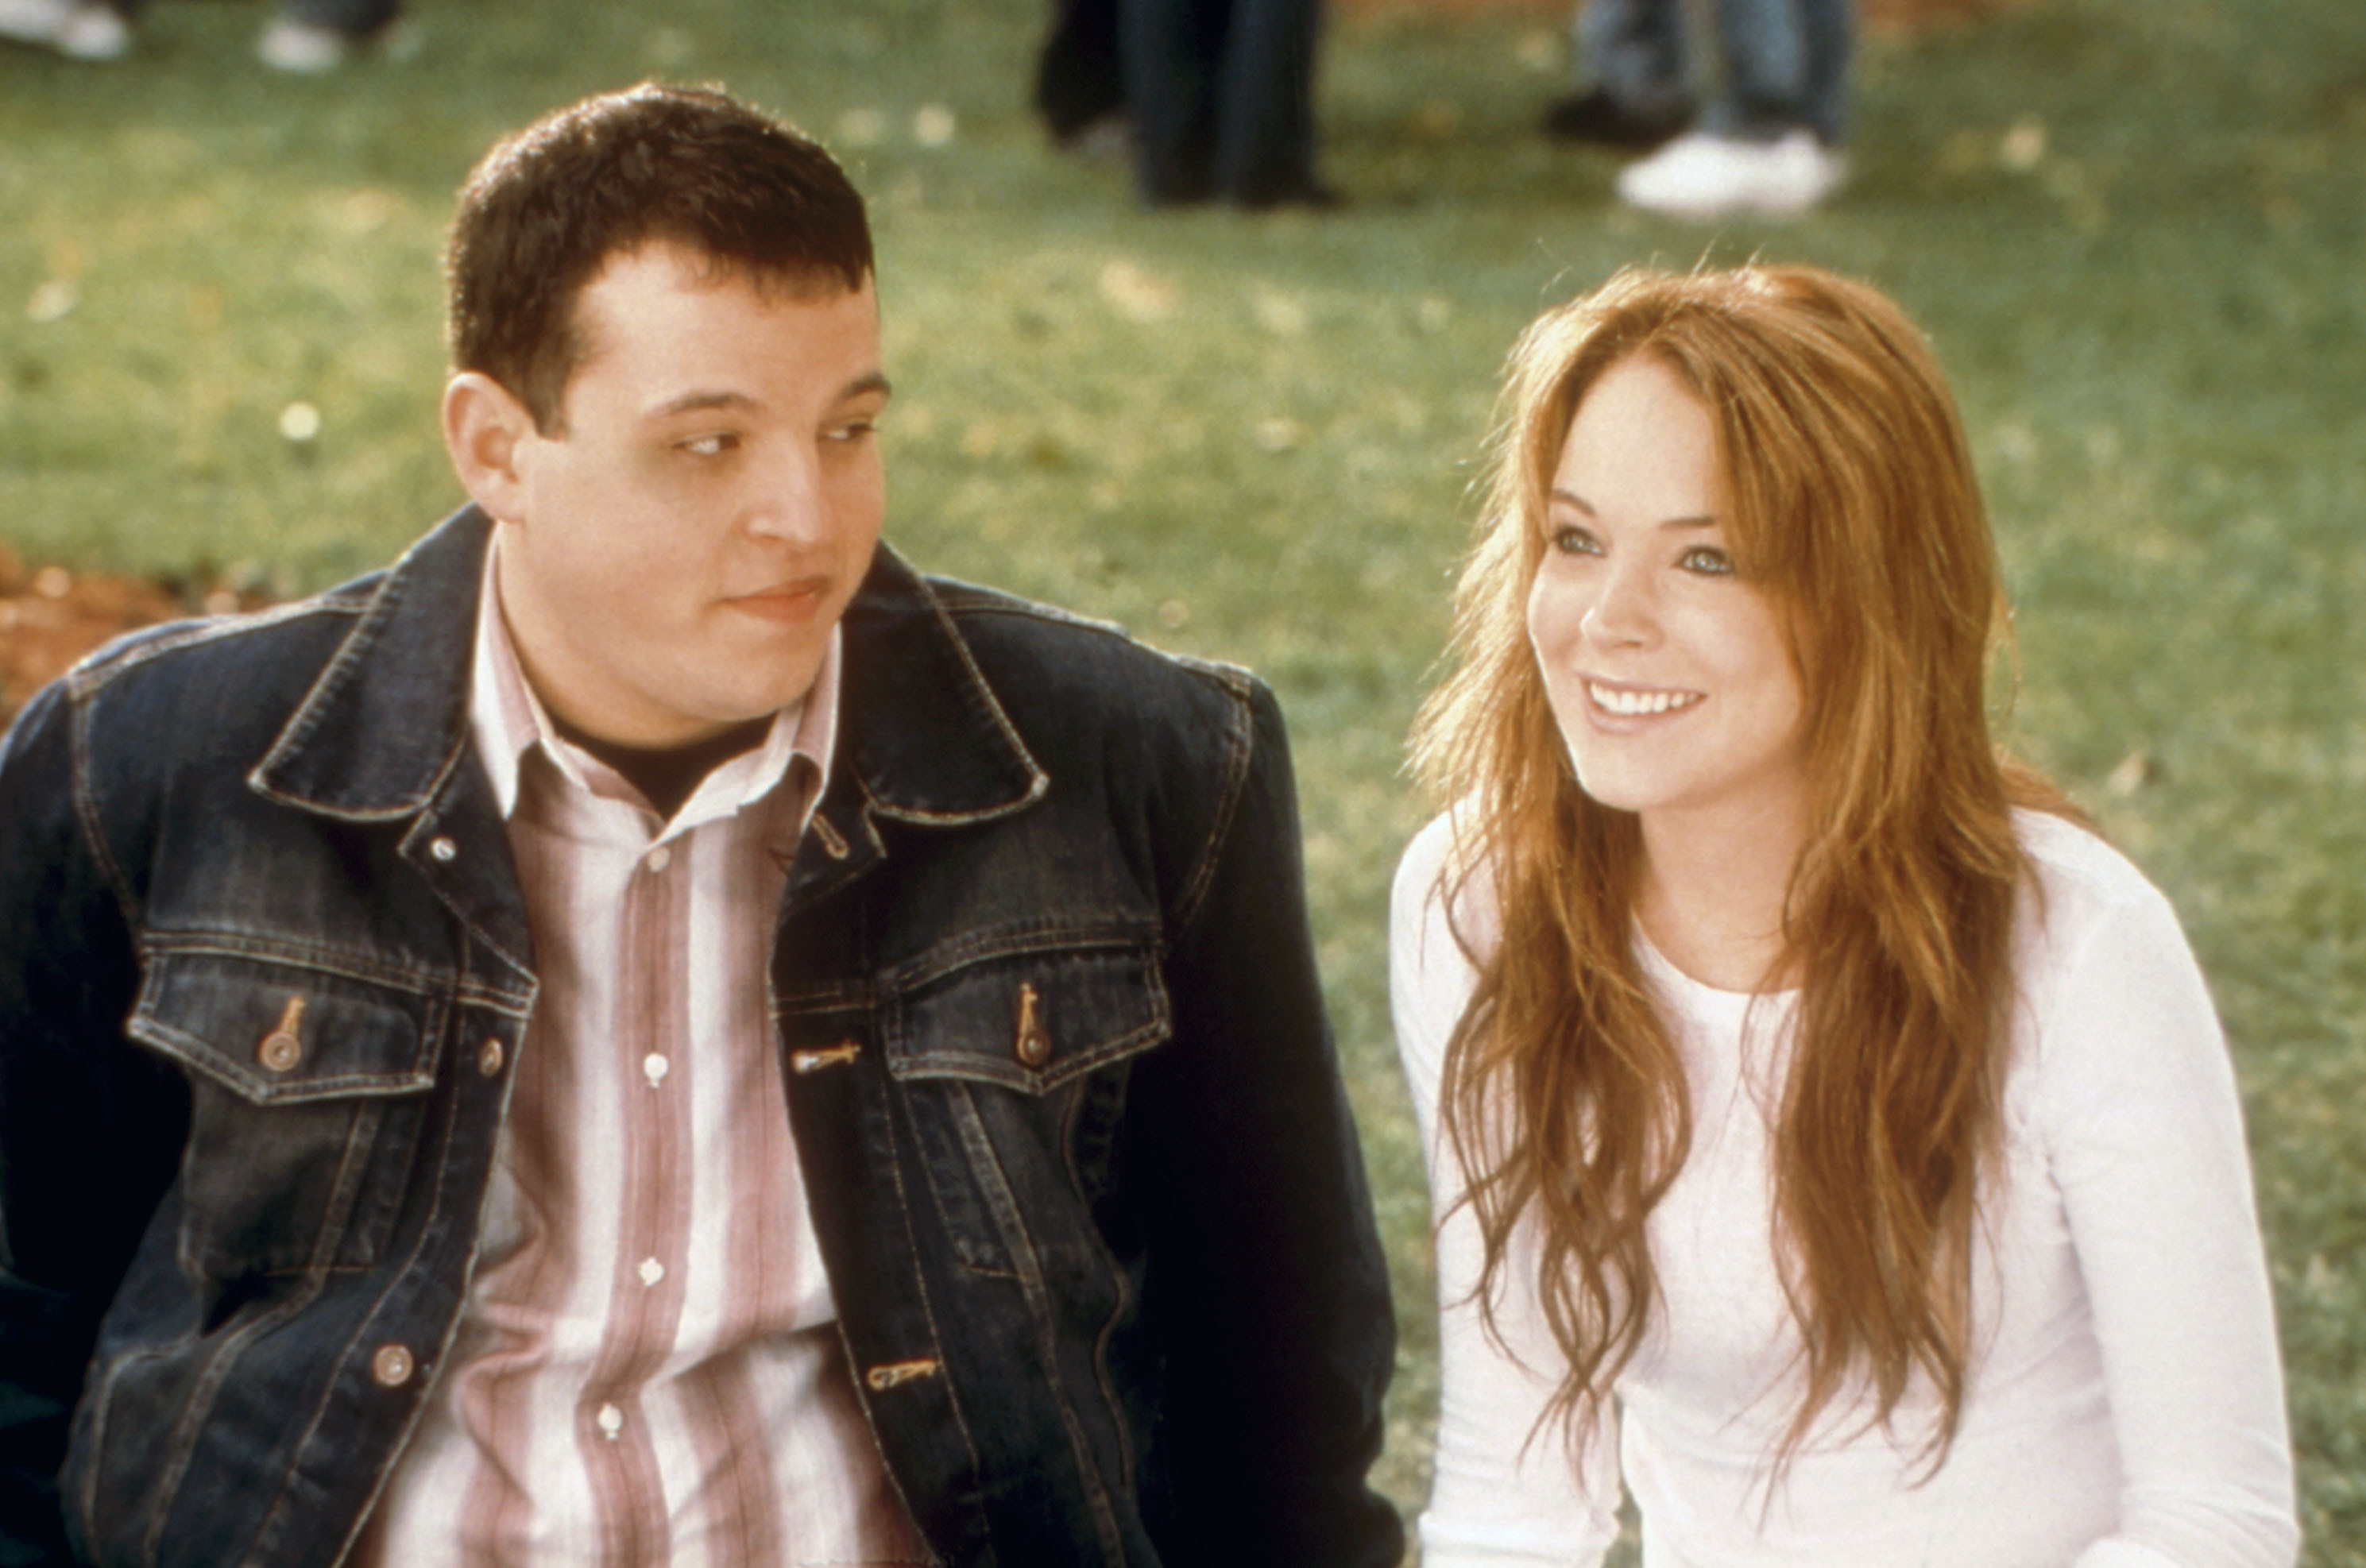 Daniel Franzese and Lindsay Lohan sit on the lawn